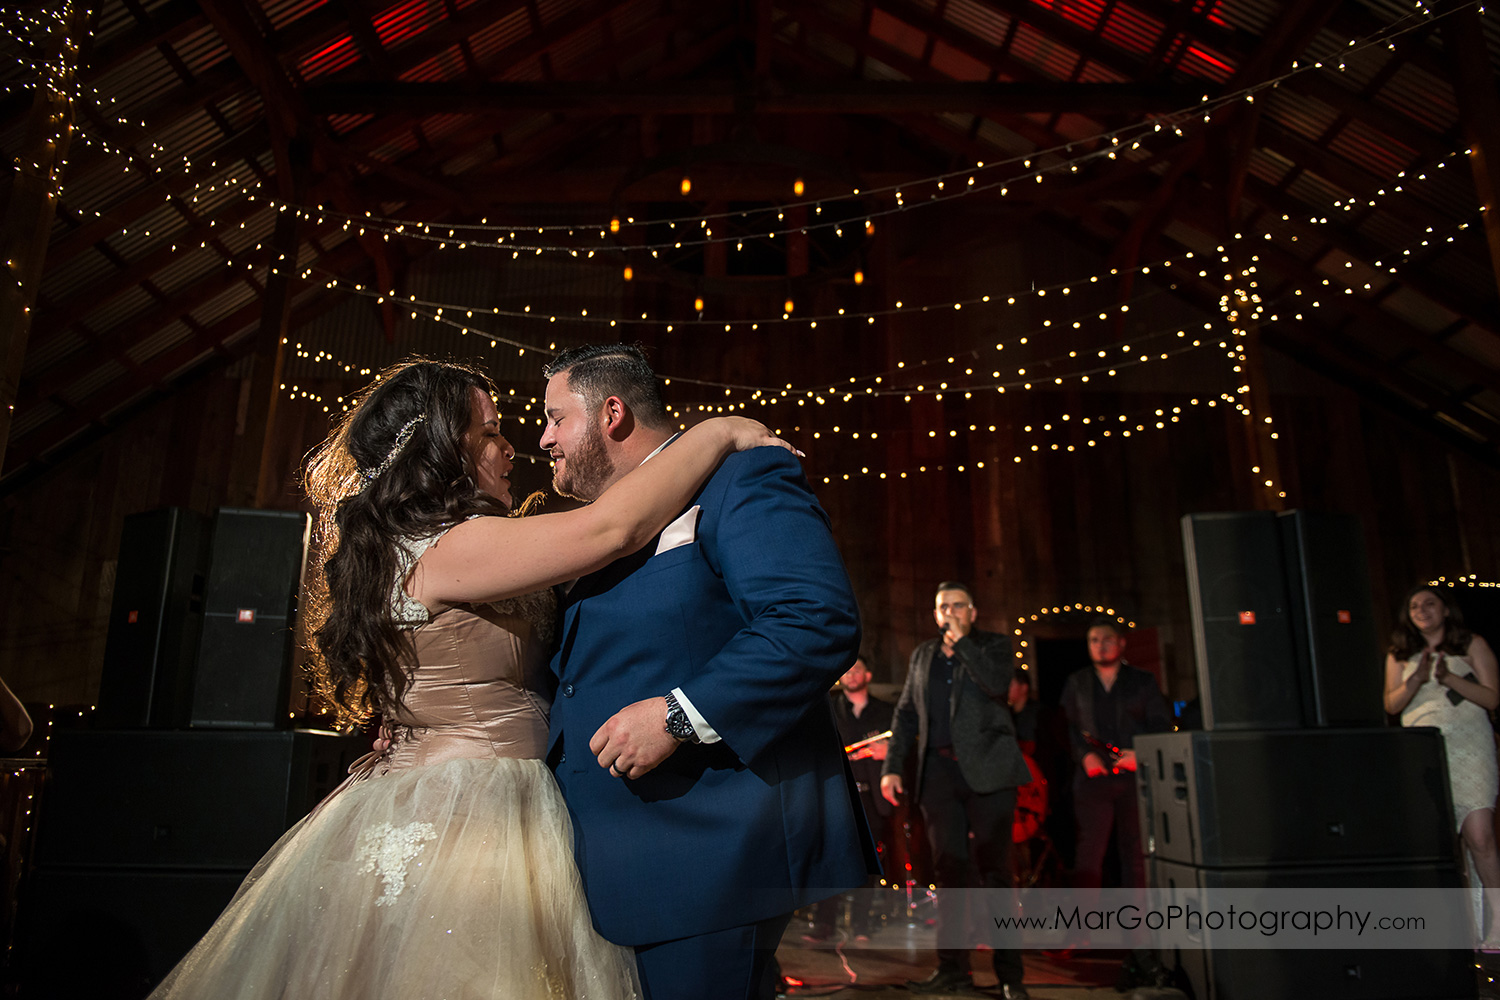 bride and groom during first dance at wedding recetpion at Taber Ranch Vineyards